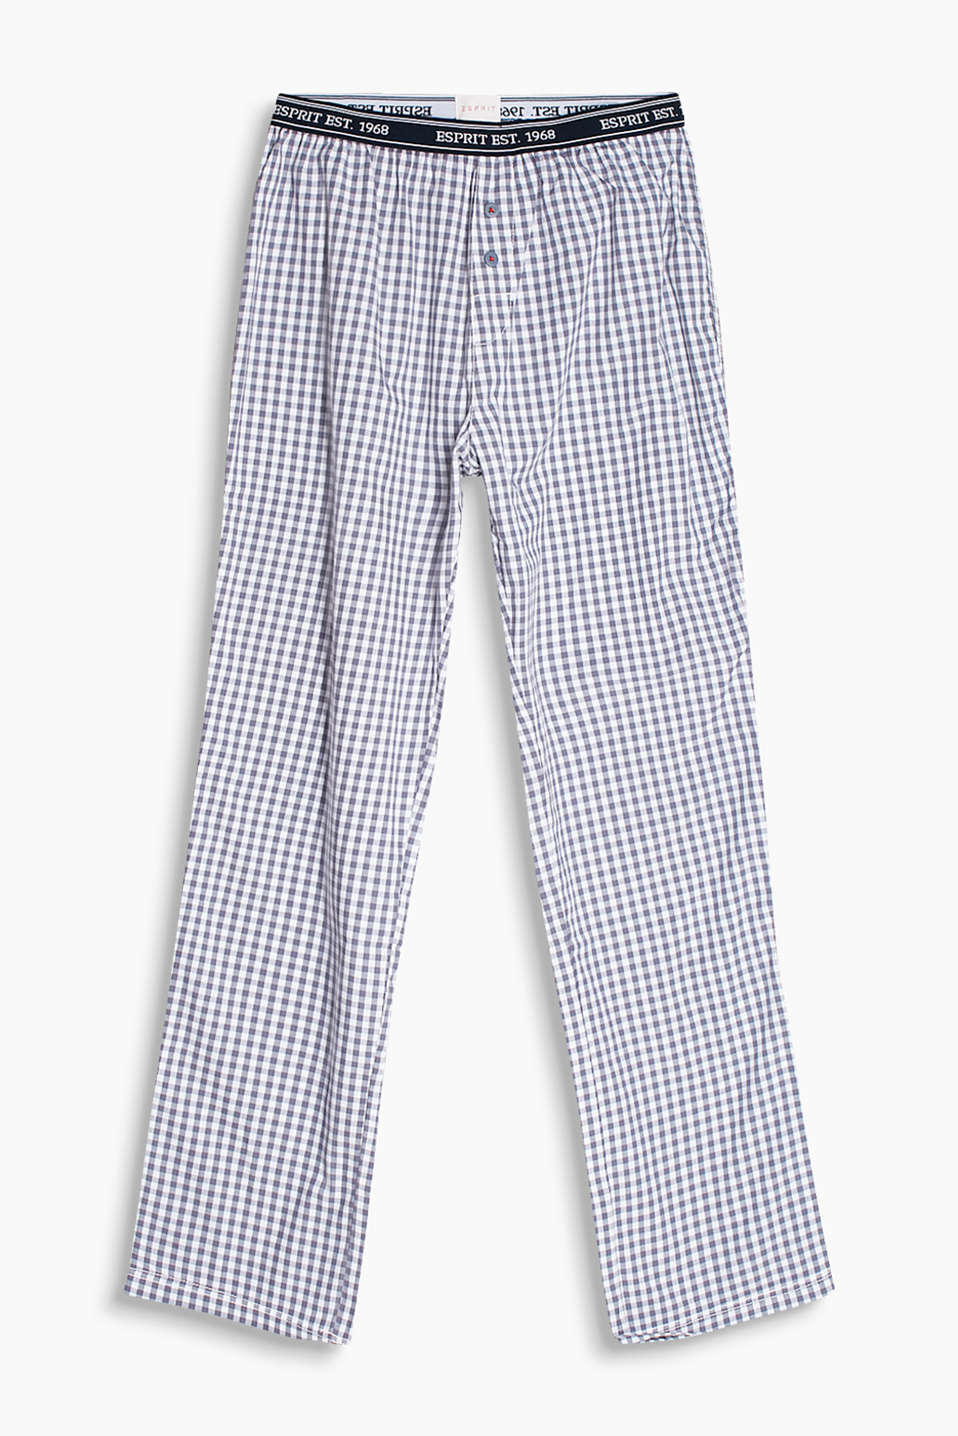 Woven pyjama bottoms with gingham check and an elasticated logo waistband, 100% cotton